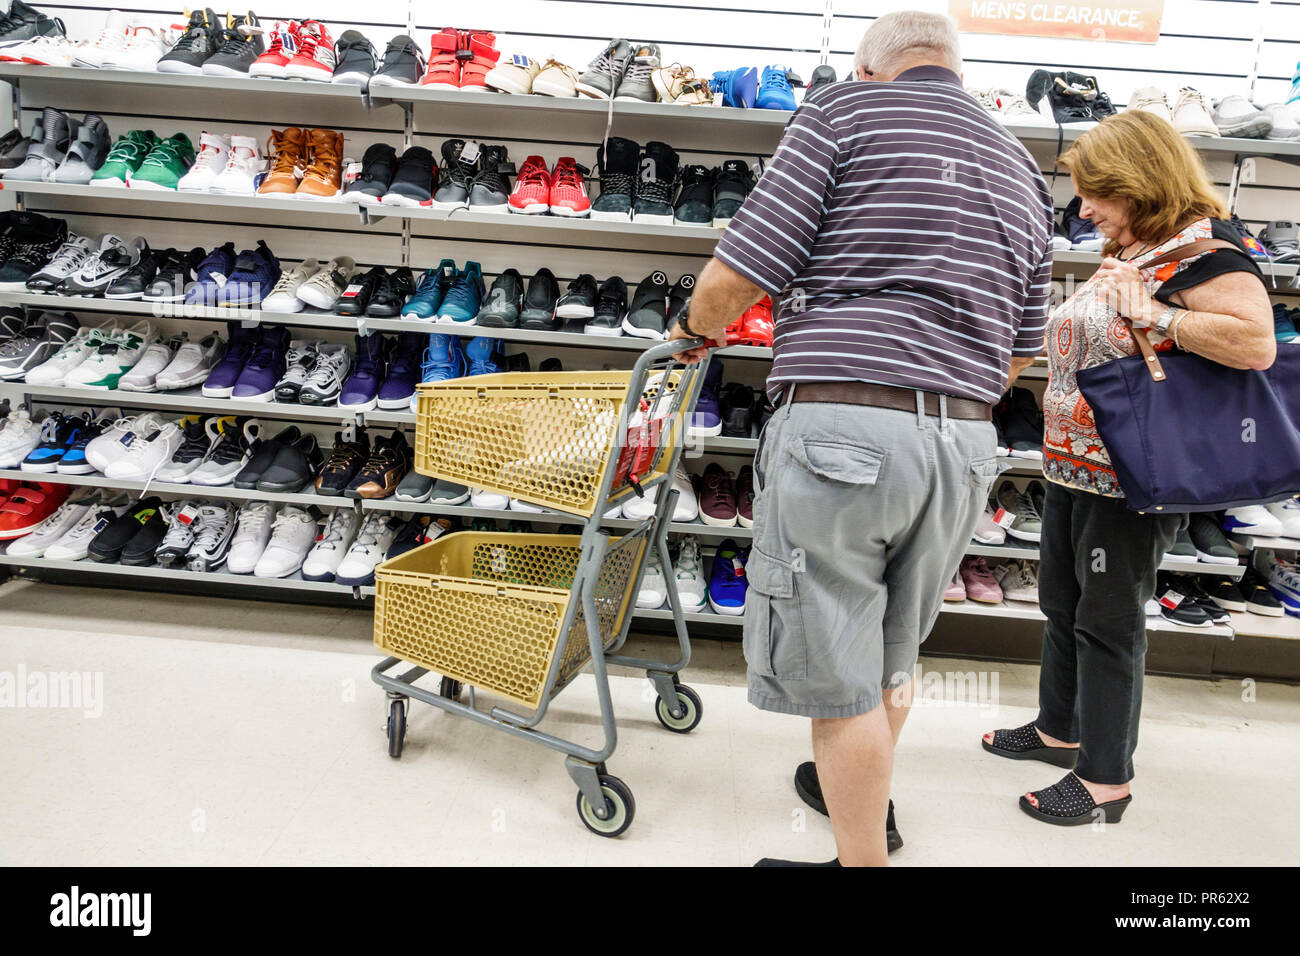 Miami Florida Kendall The Palms at Town & Country Mall Marshalls discount department store inside shopping shoes men's athletic man woman couple looki Stock Photo